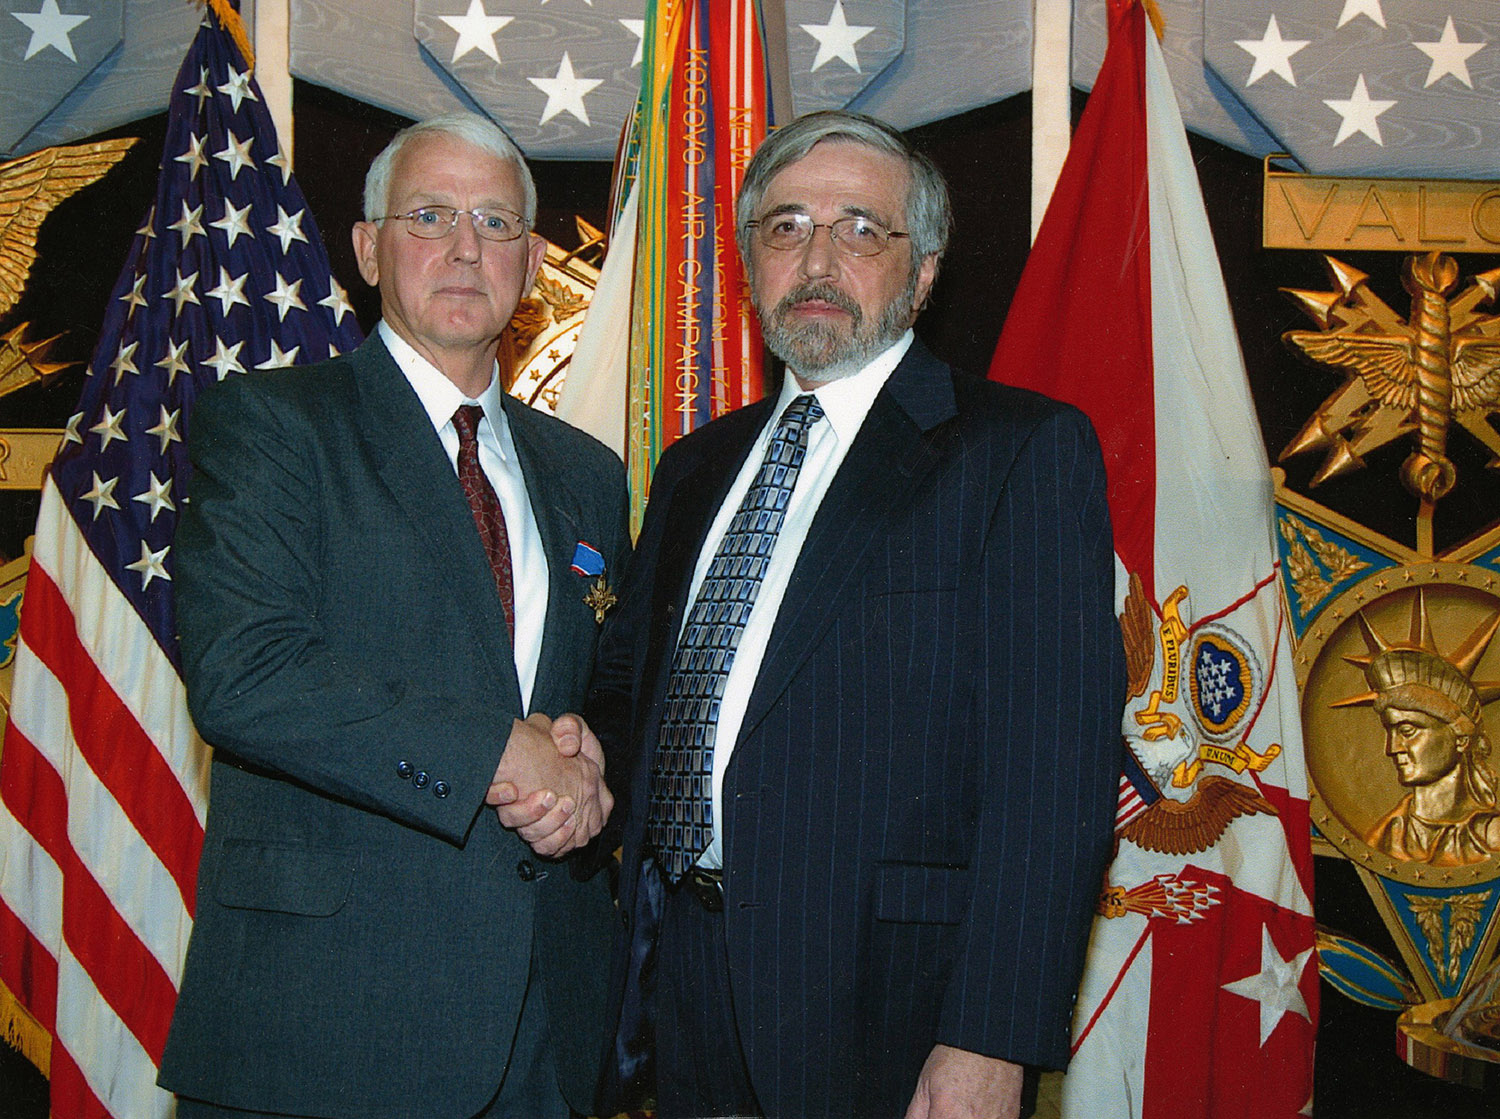 Stephen E. Lawrence (left) shakes hands with Richard Boylan, the archivist who found the order for his award, March 24, 2005 Photo courtesy of Richard Boylan